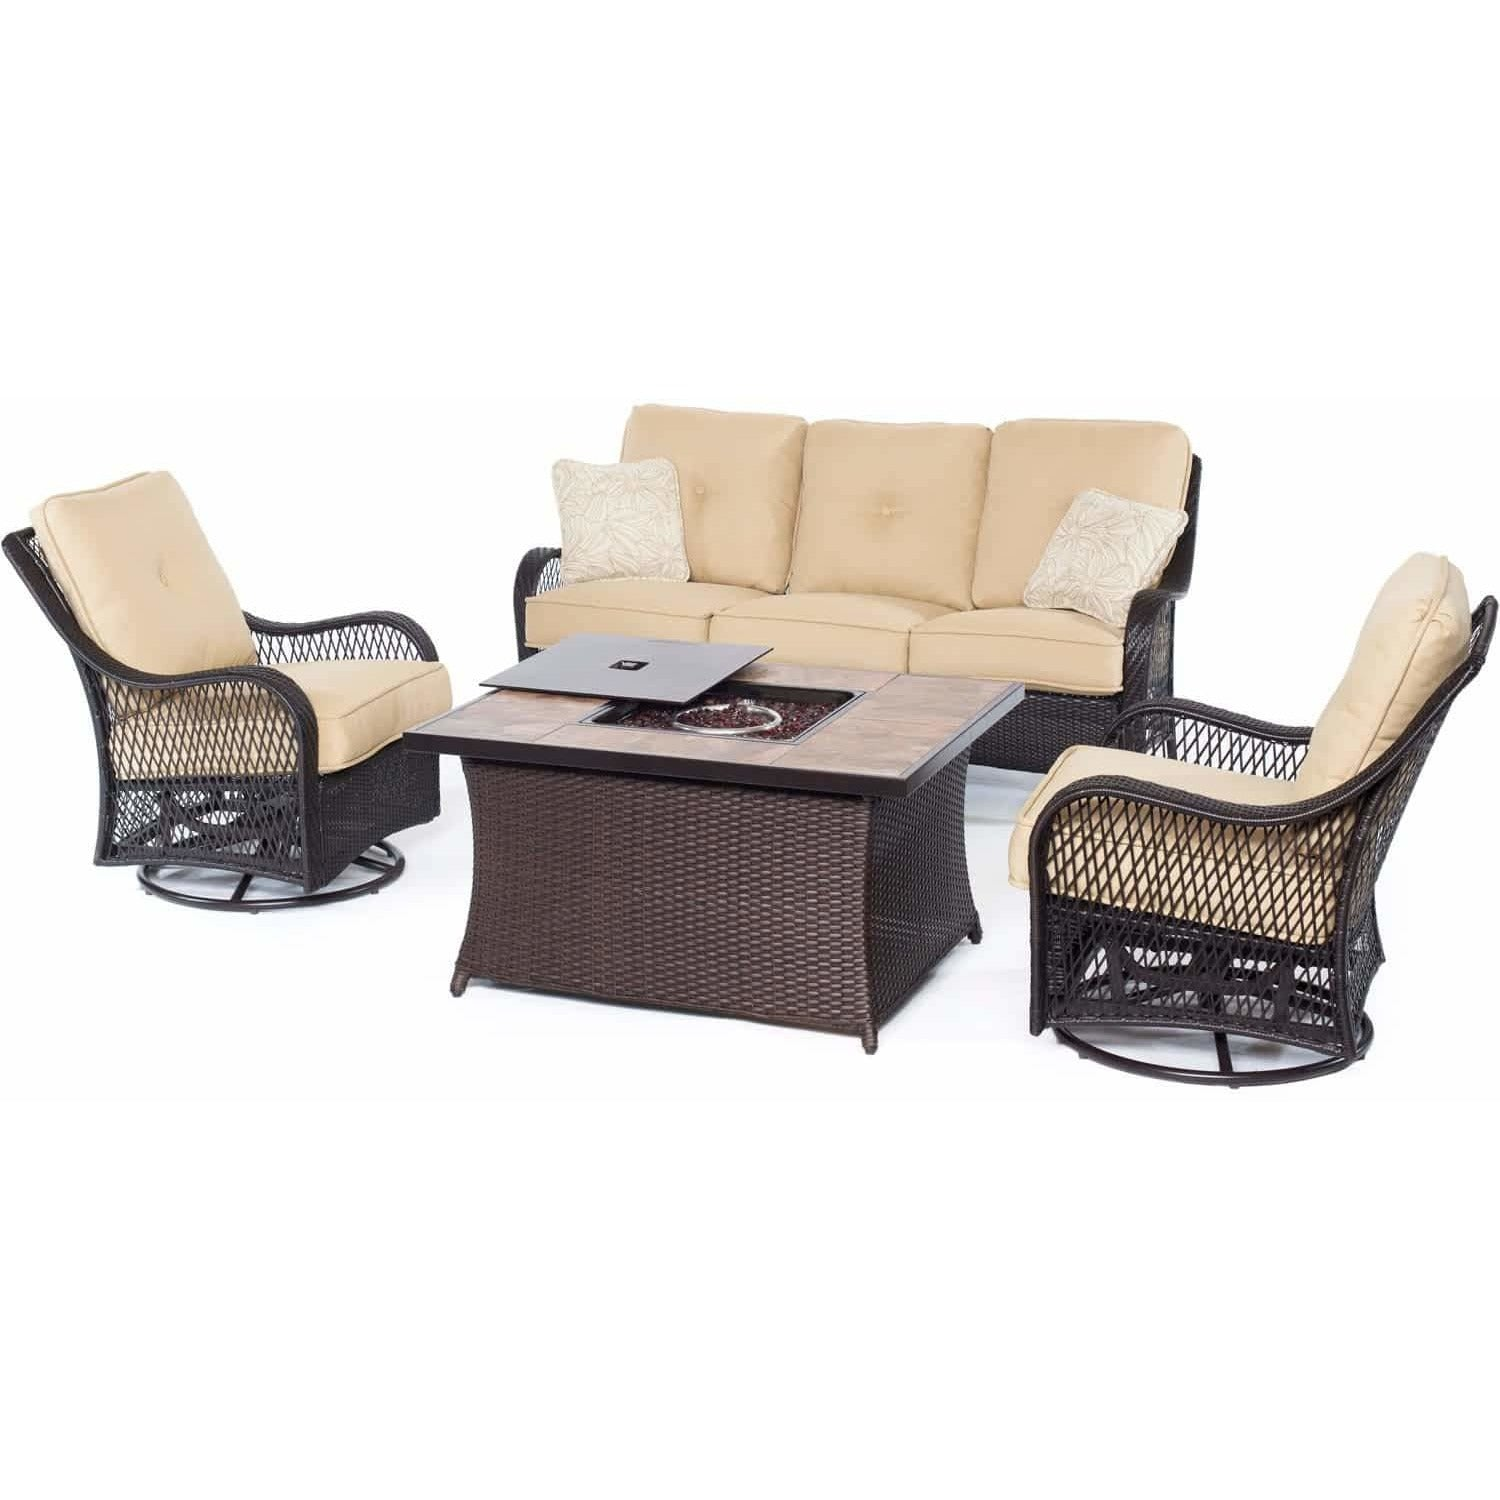 Sensational Hammond Brentwood 4Pc Fire Pit Table Set Loveseat 2 Swivel Evergreenethics Interior Chair Design Evergreenethicsorg